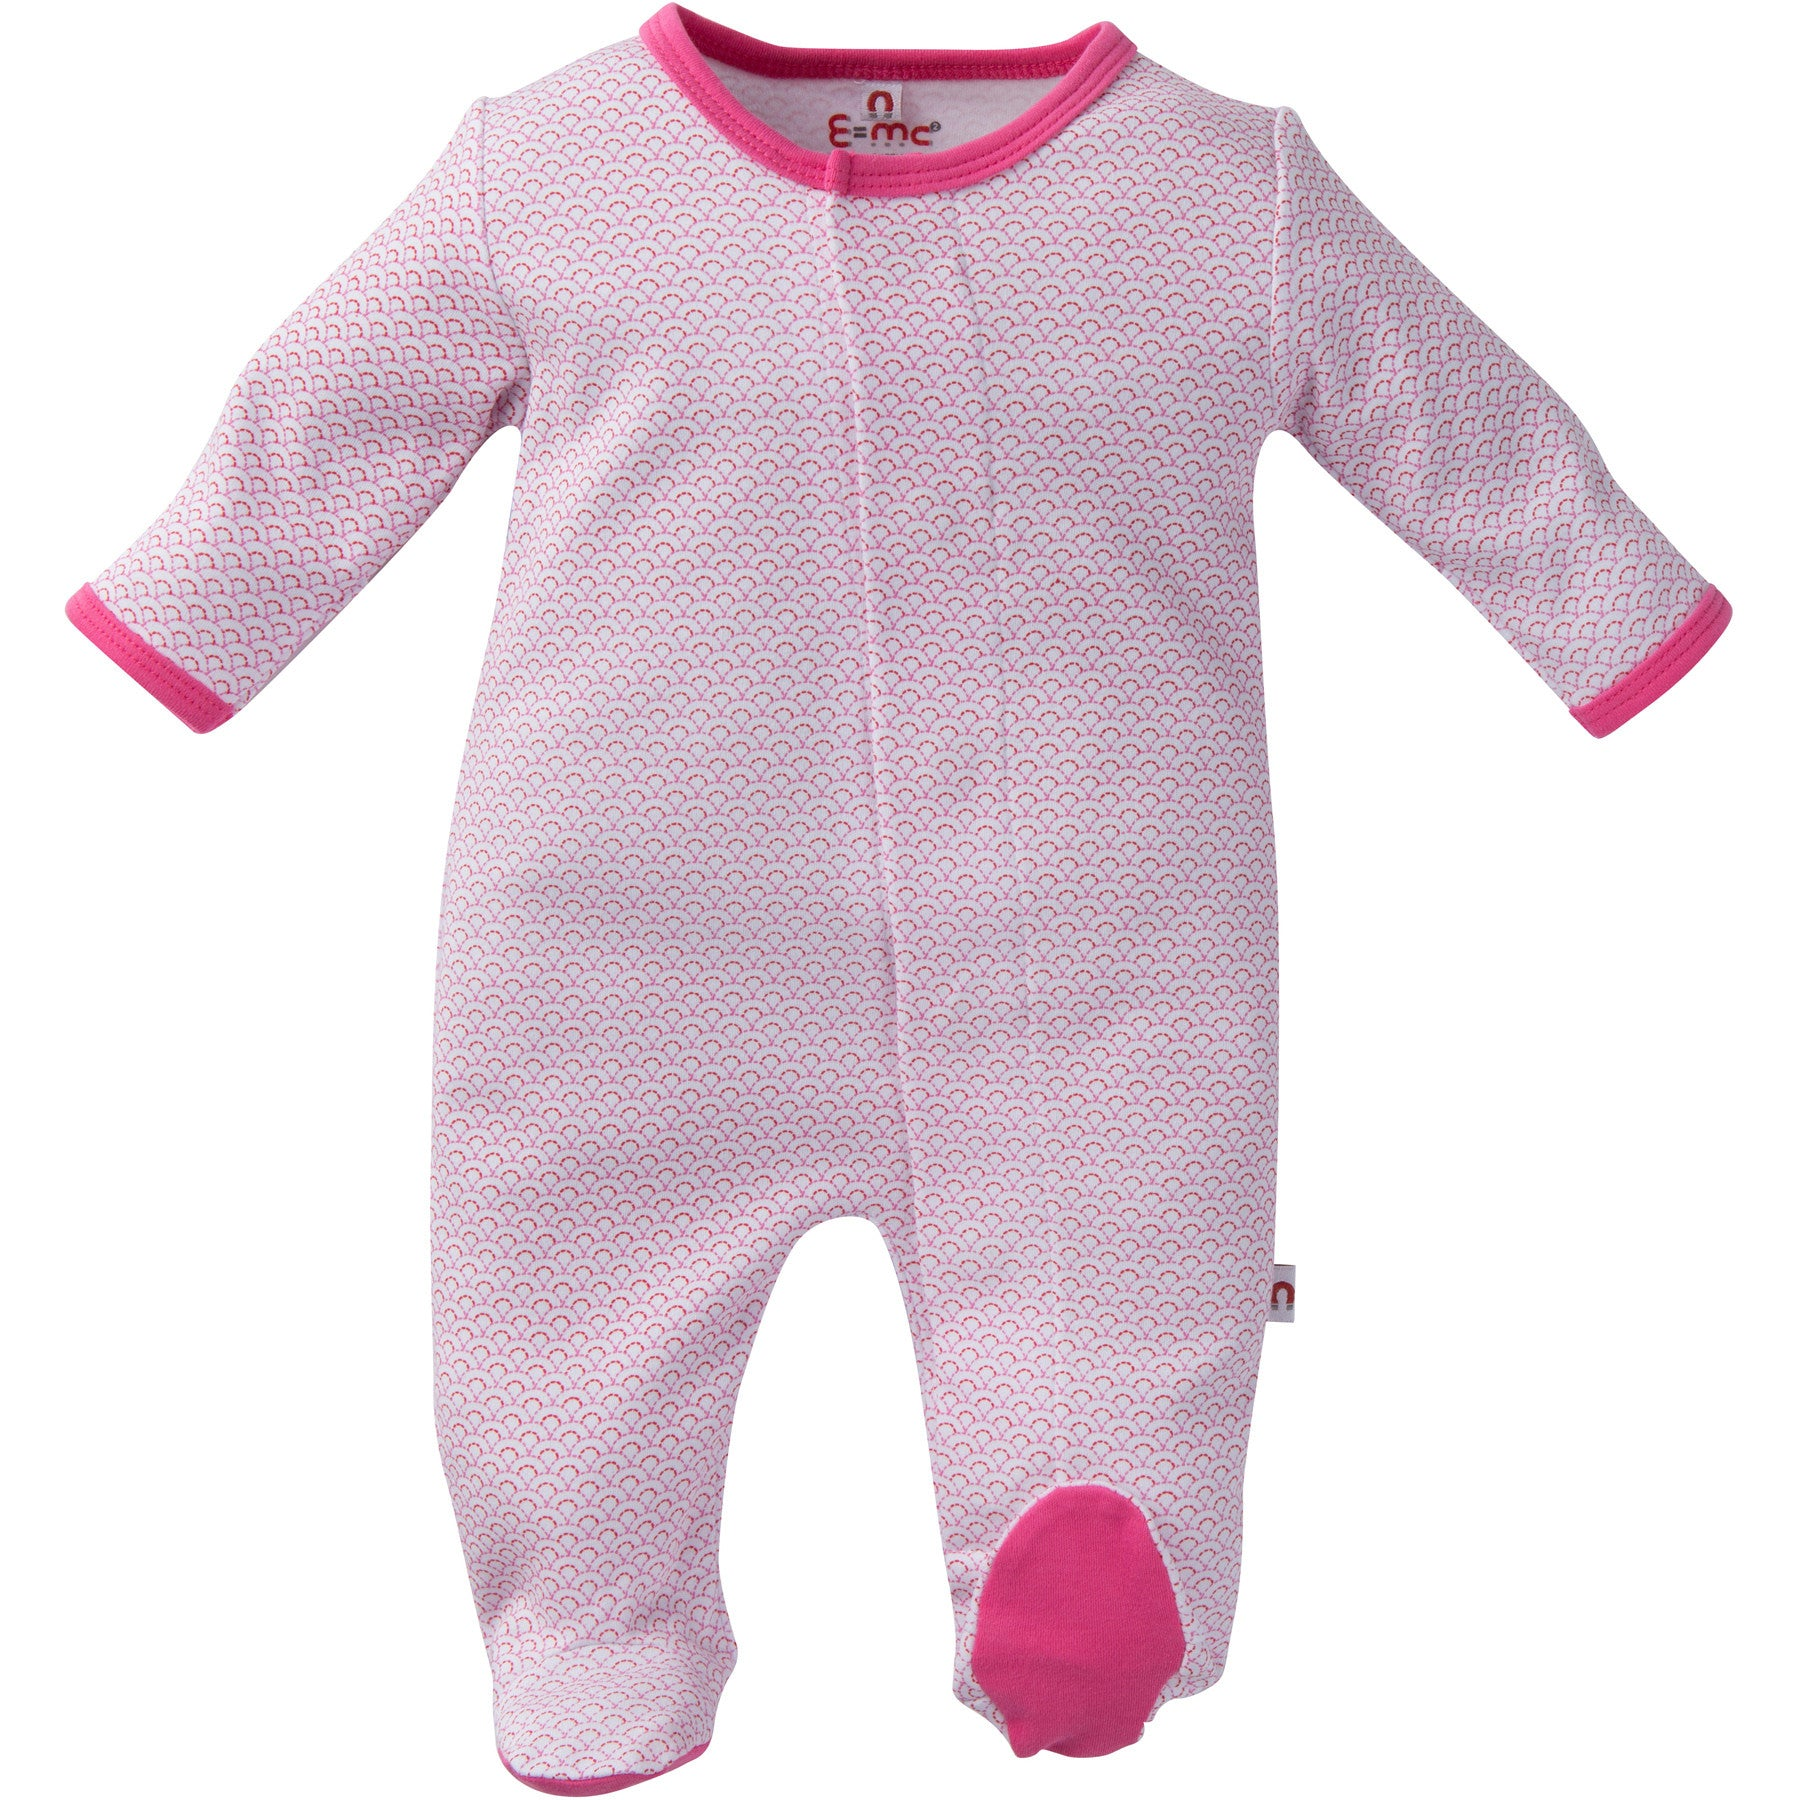 E=MC2 Baby Clothes Made Easier with Magnets